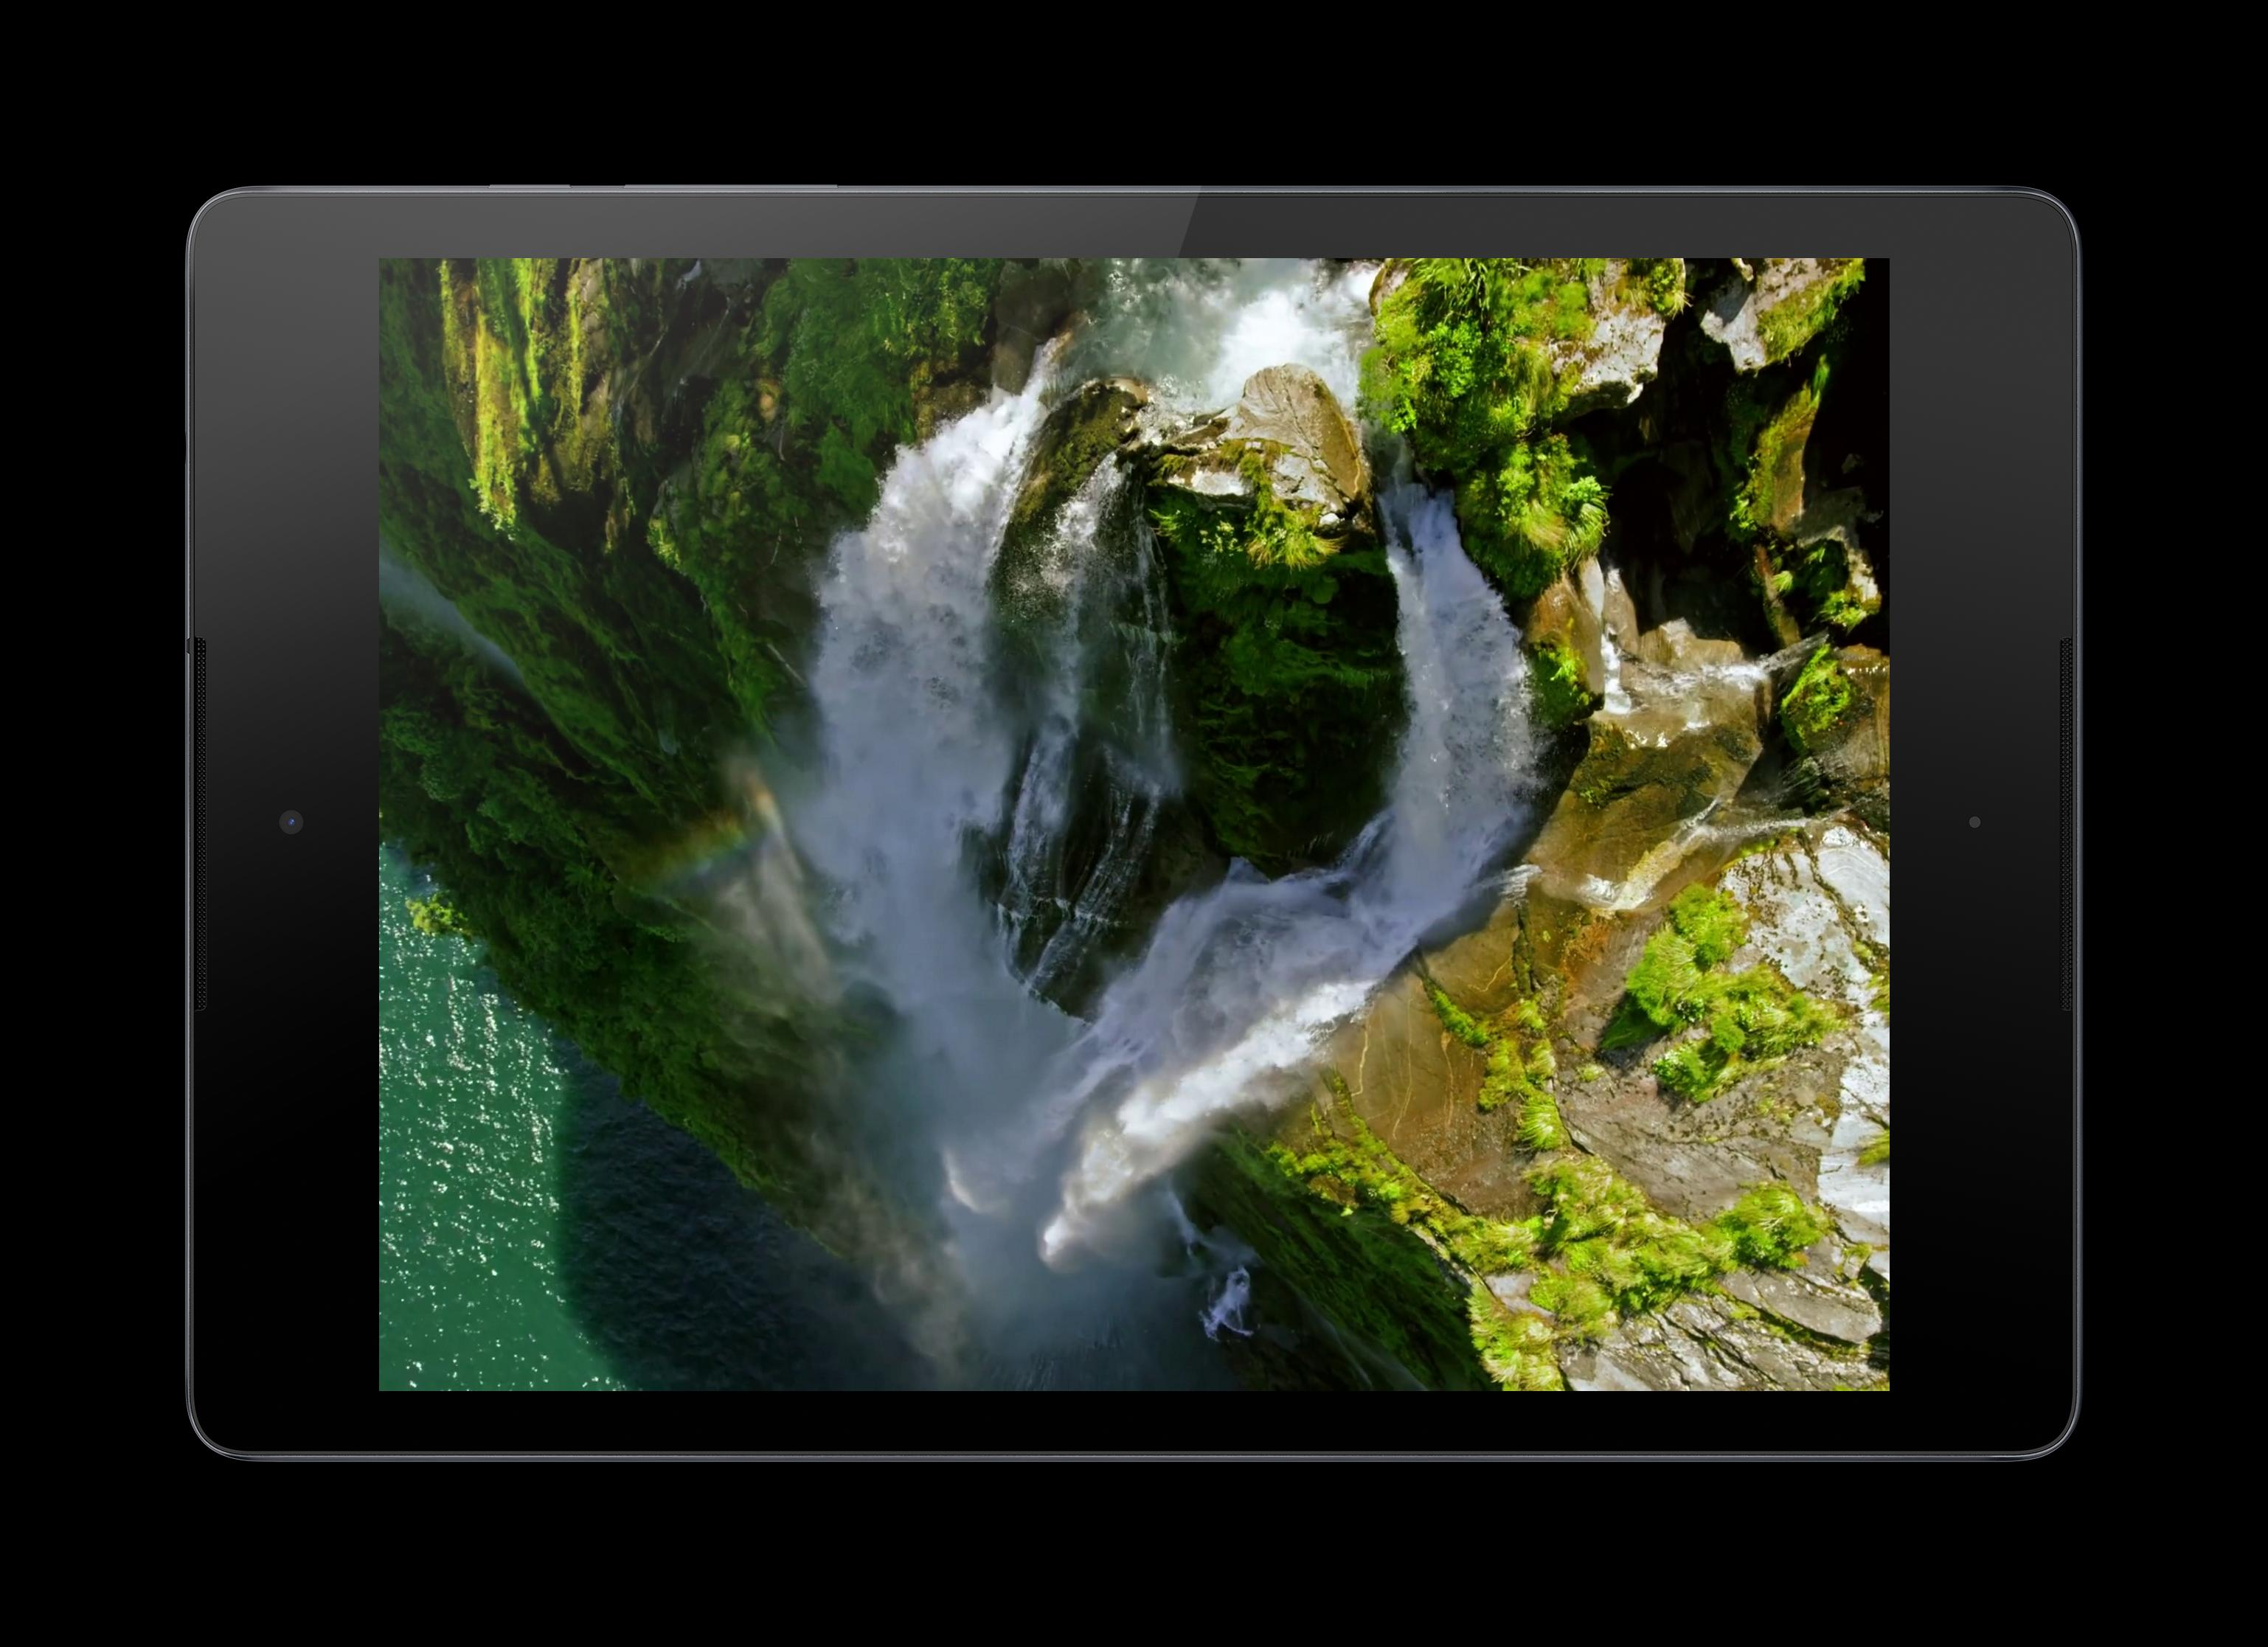 3D Video Live Wallpaper for Android - APK Download